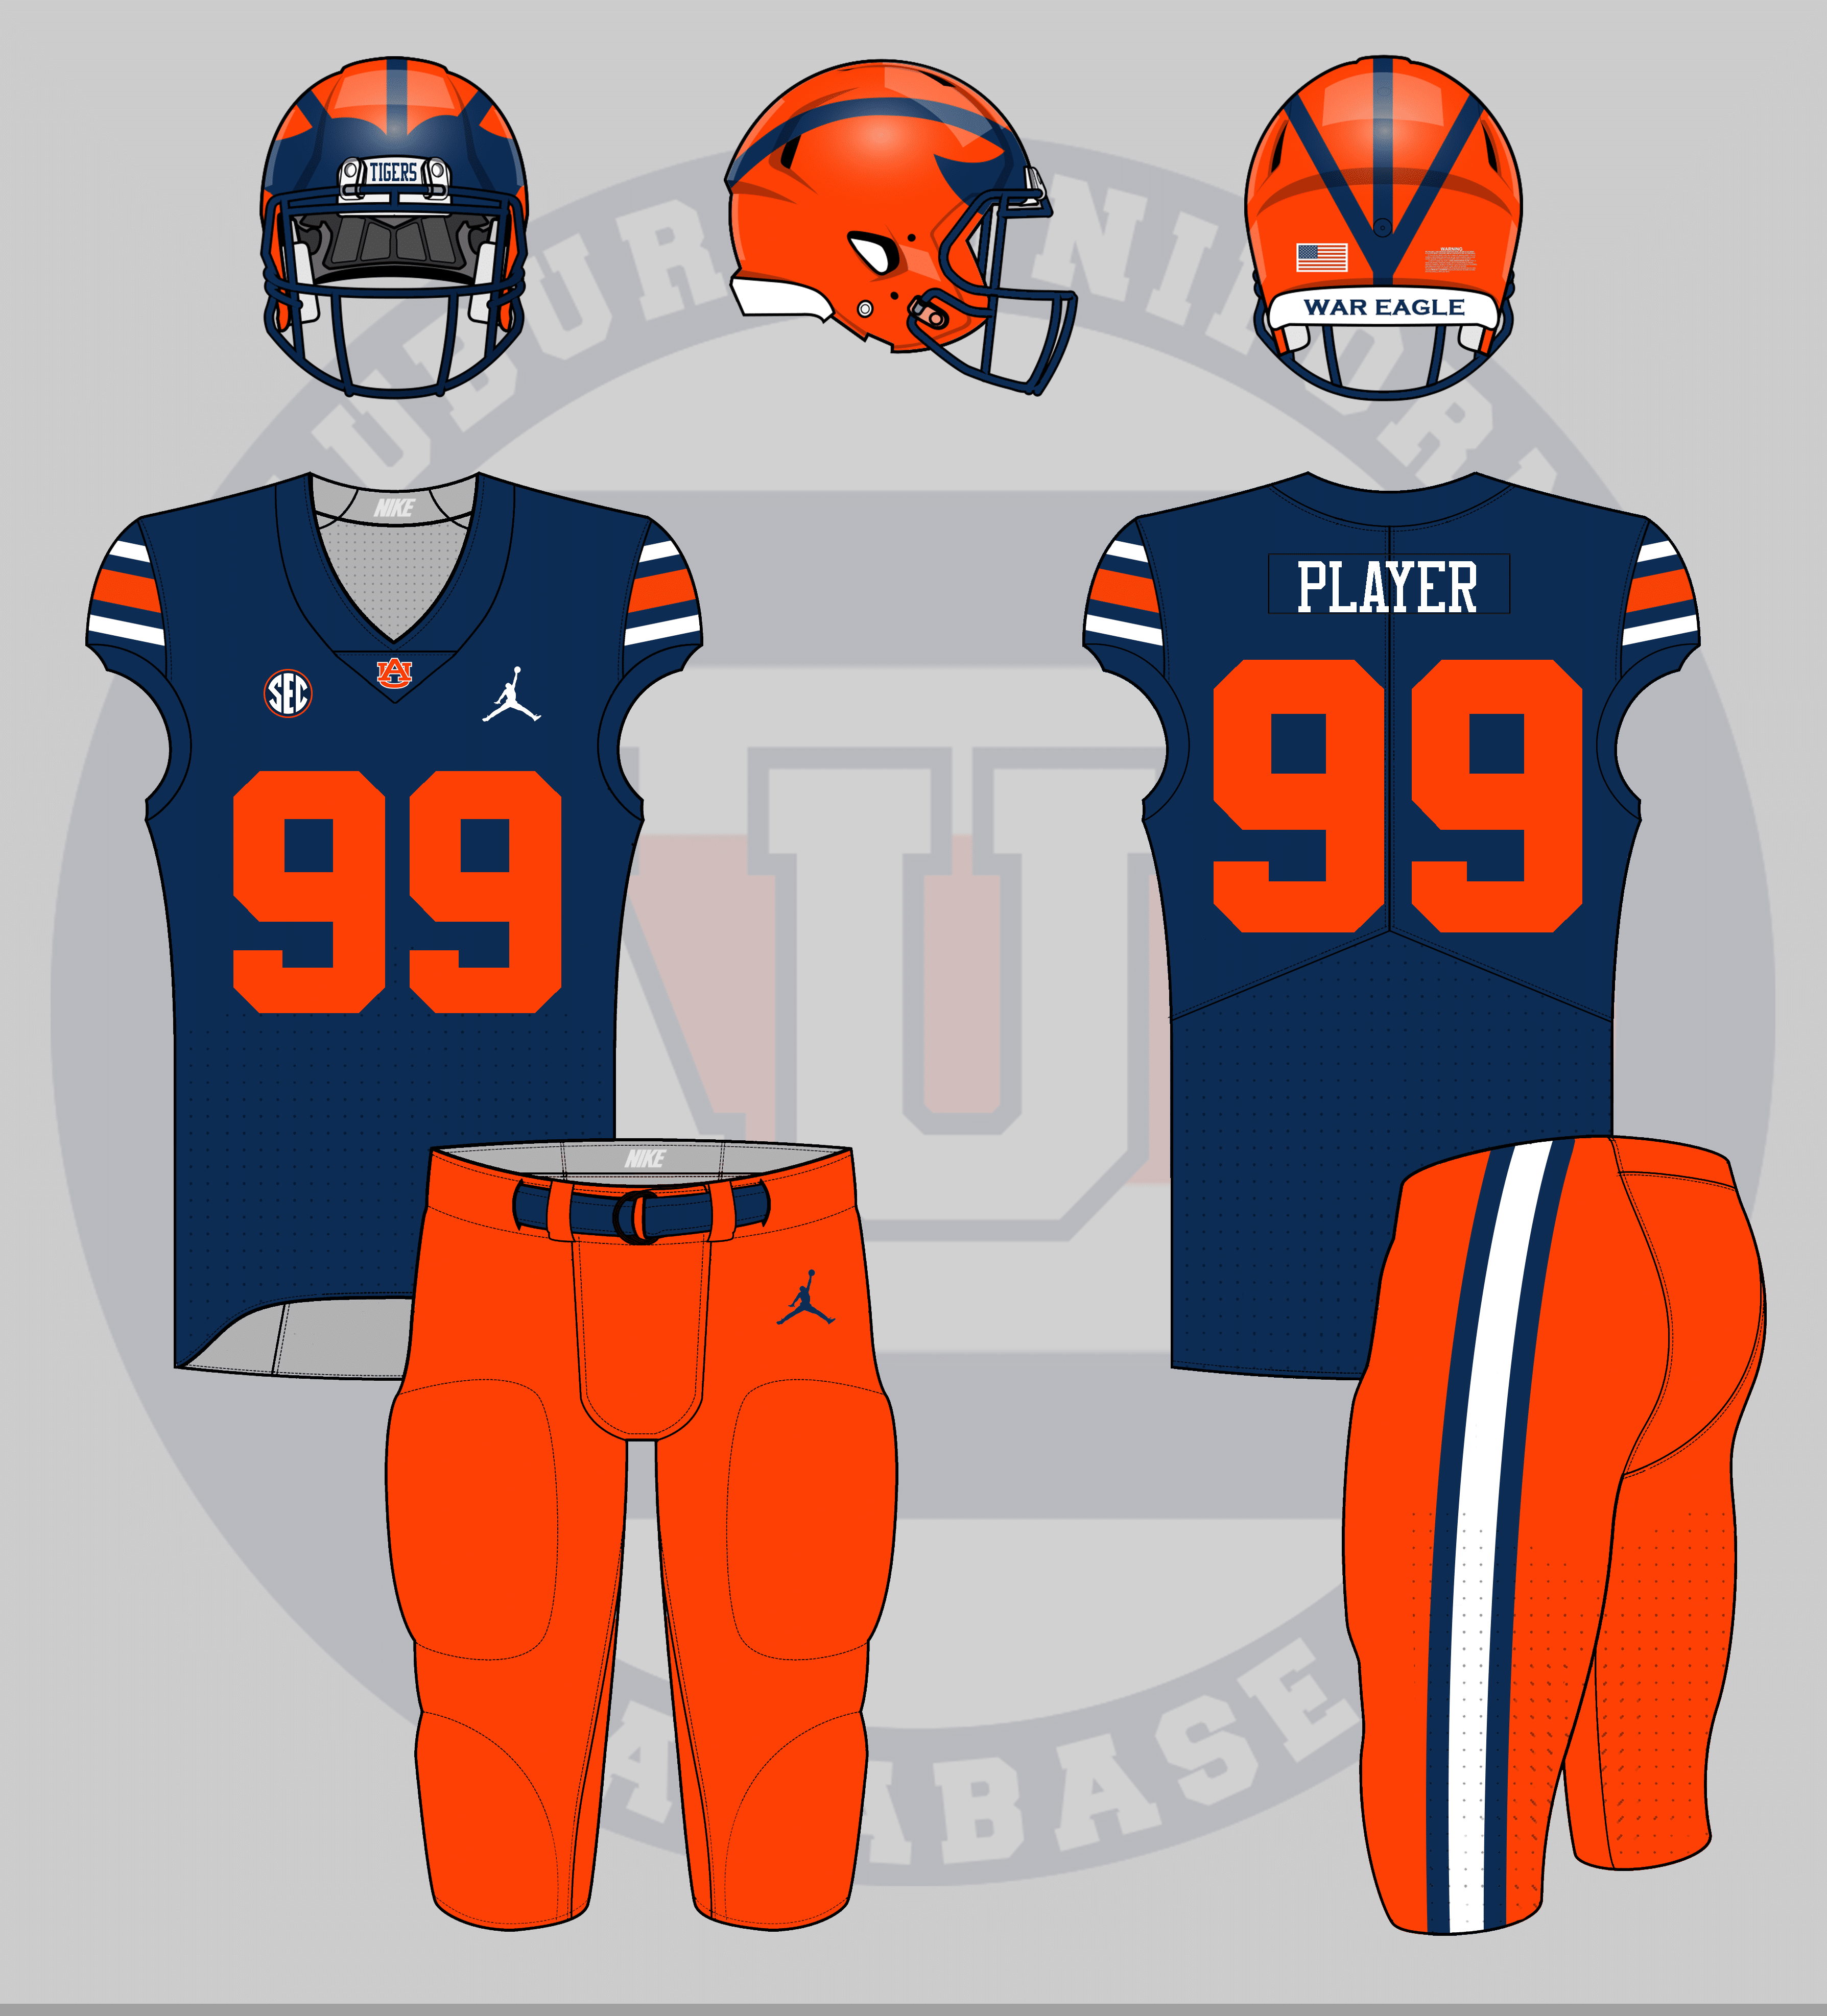 78a0781a1bd I tried to mimic Michigan's uniforms with an Auburn twist. While Michigan  uses a dark helmet shell color with bright stripes, Auburn's are reversed.